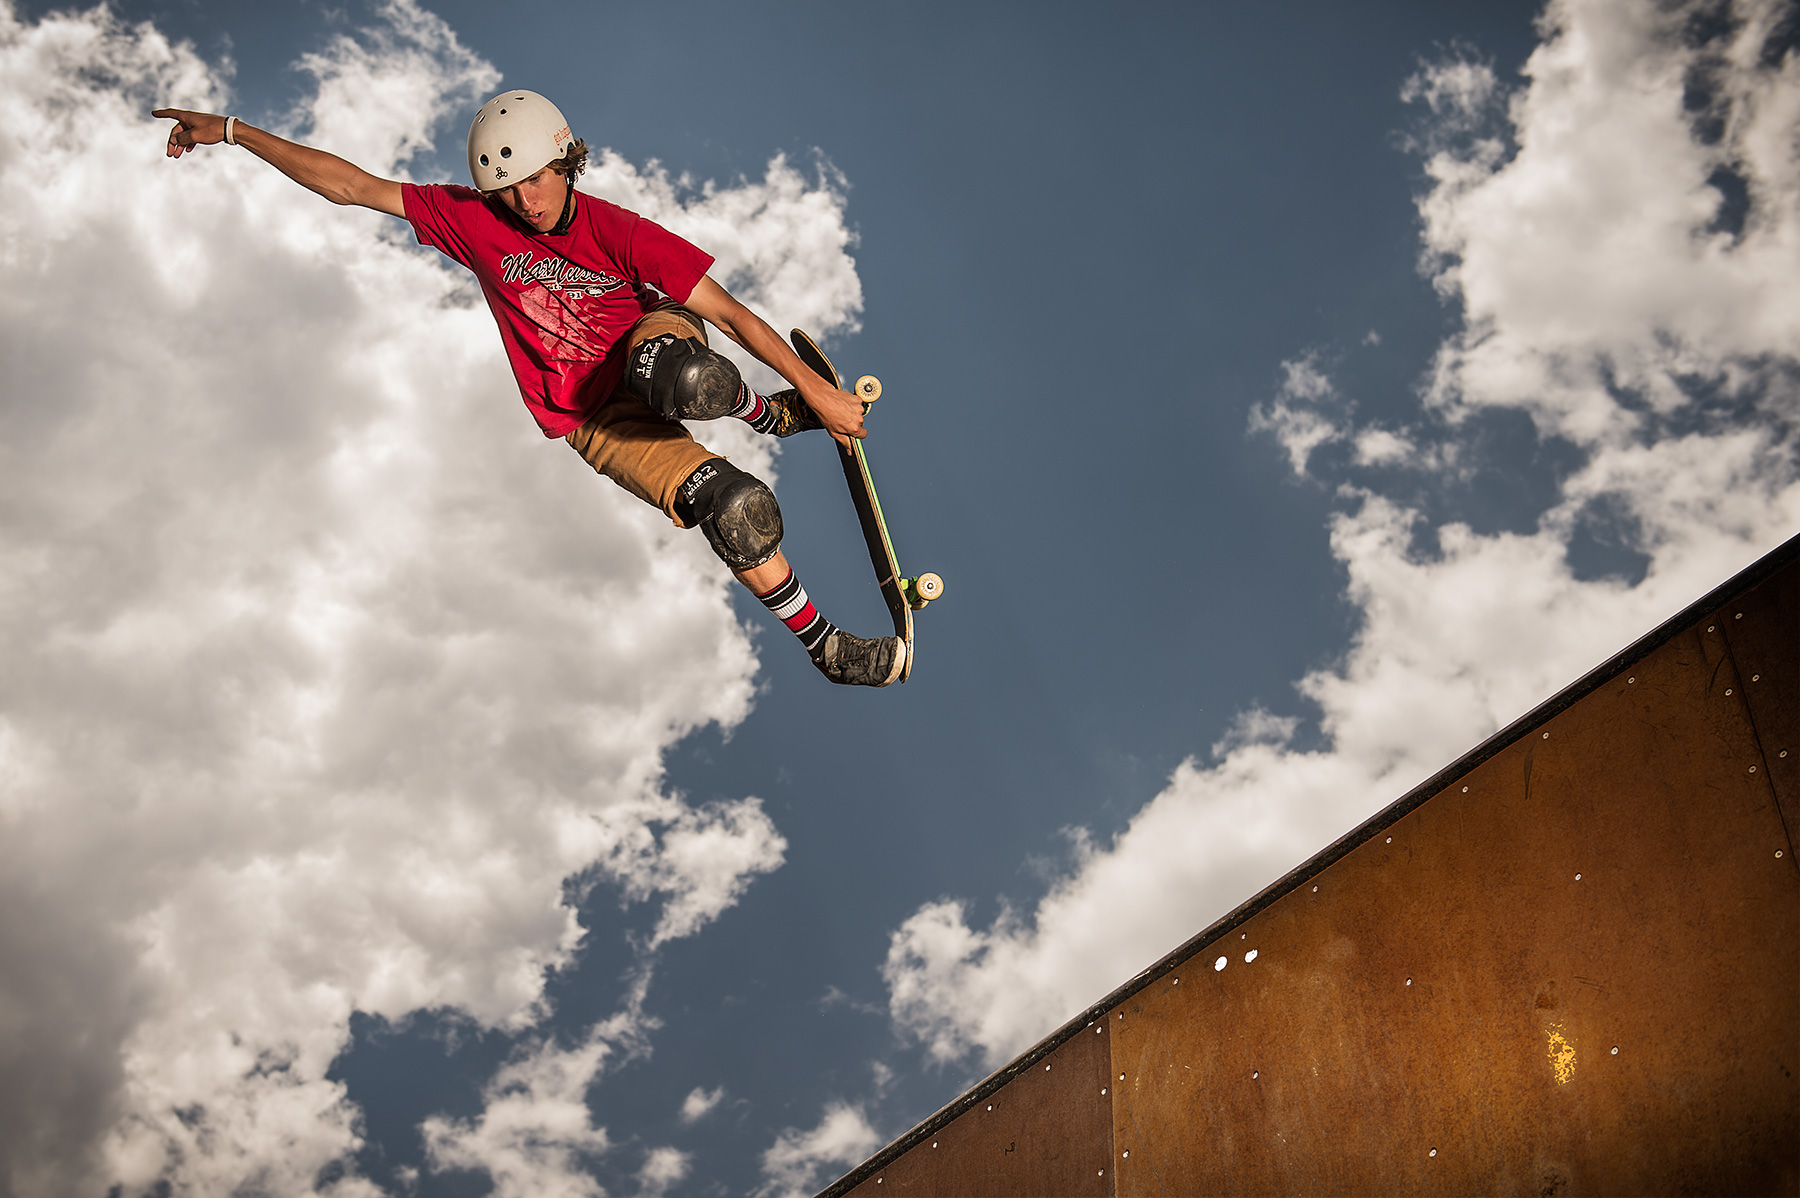 A skateboarder flies high into the sky in Colorado Springs, CO